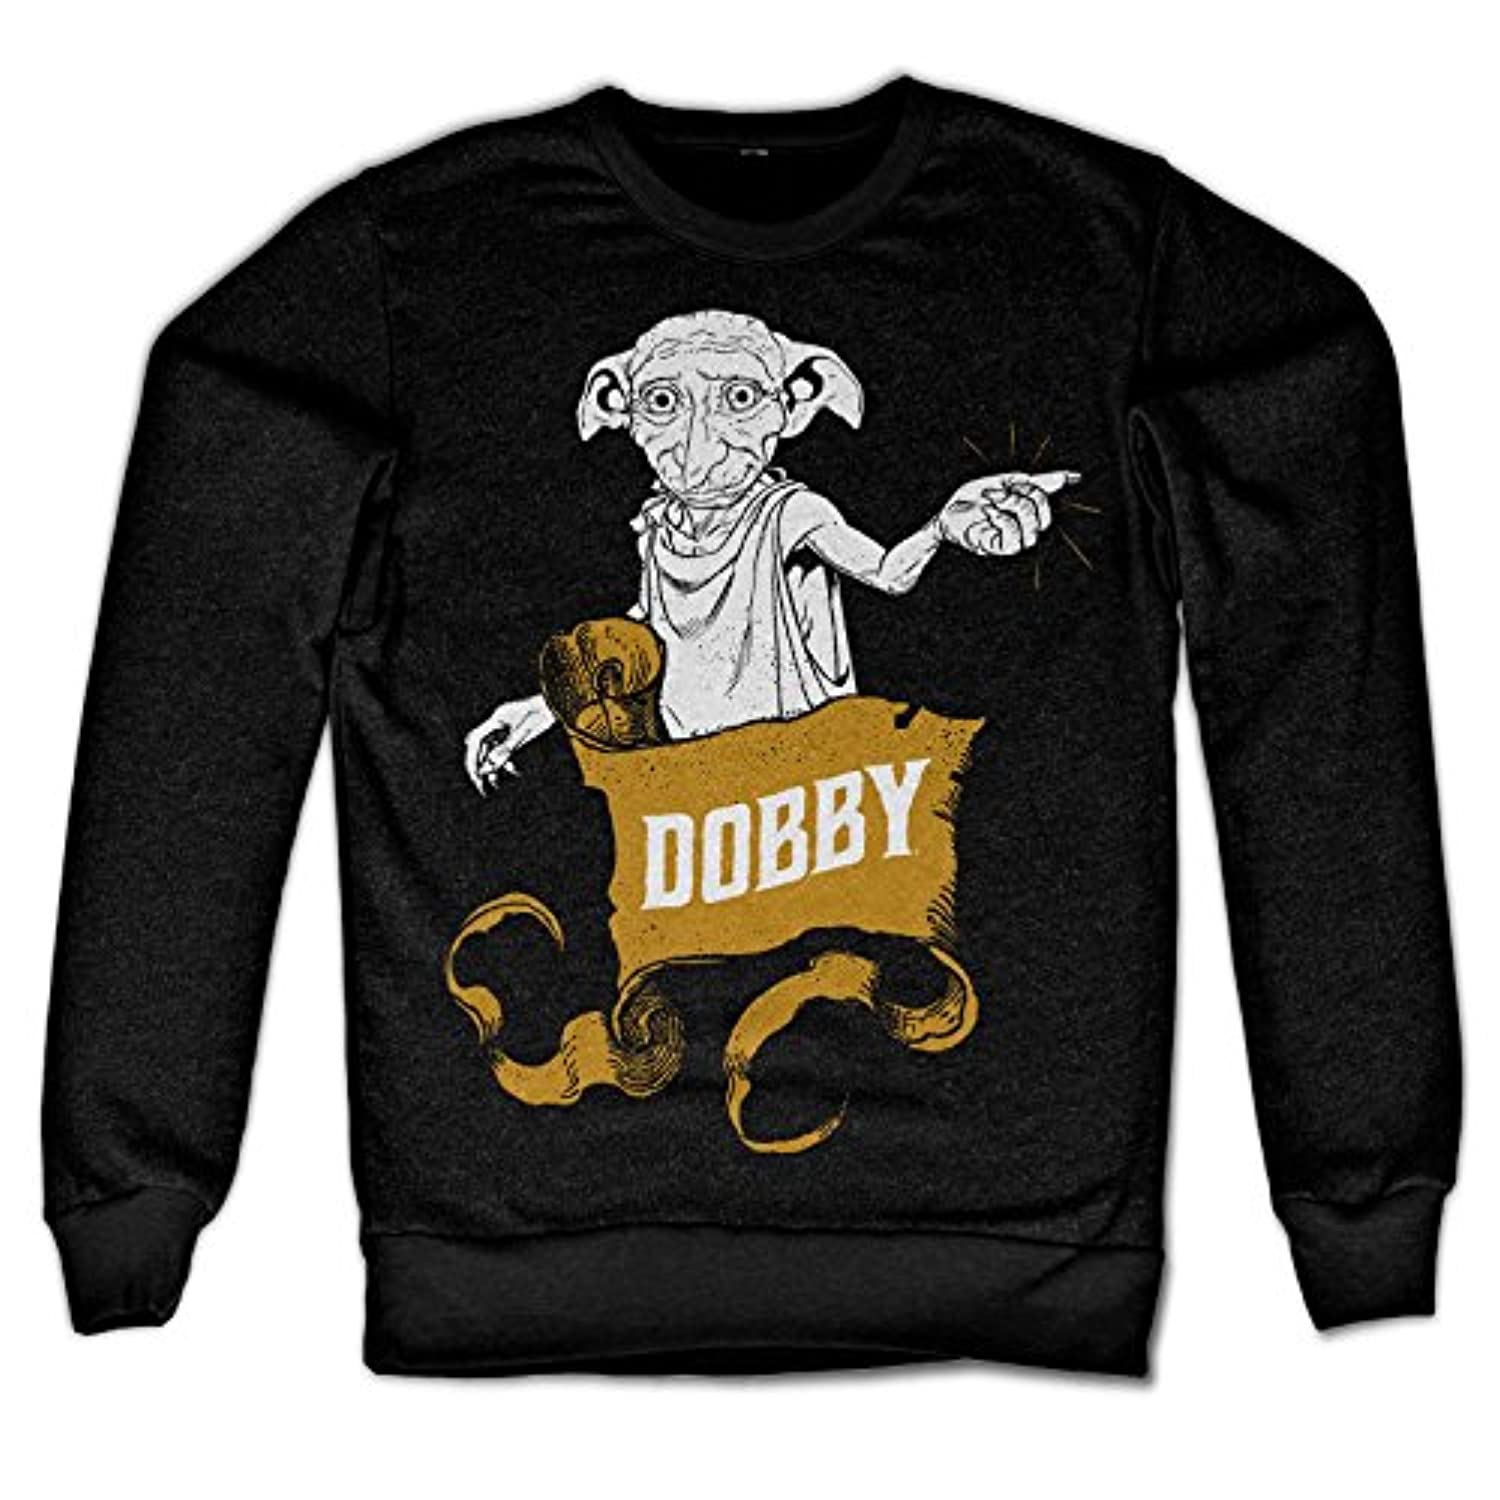 Officially Licensed Inked Harry Potter - Dobby Sweatshirt (Black)